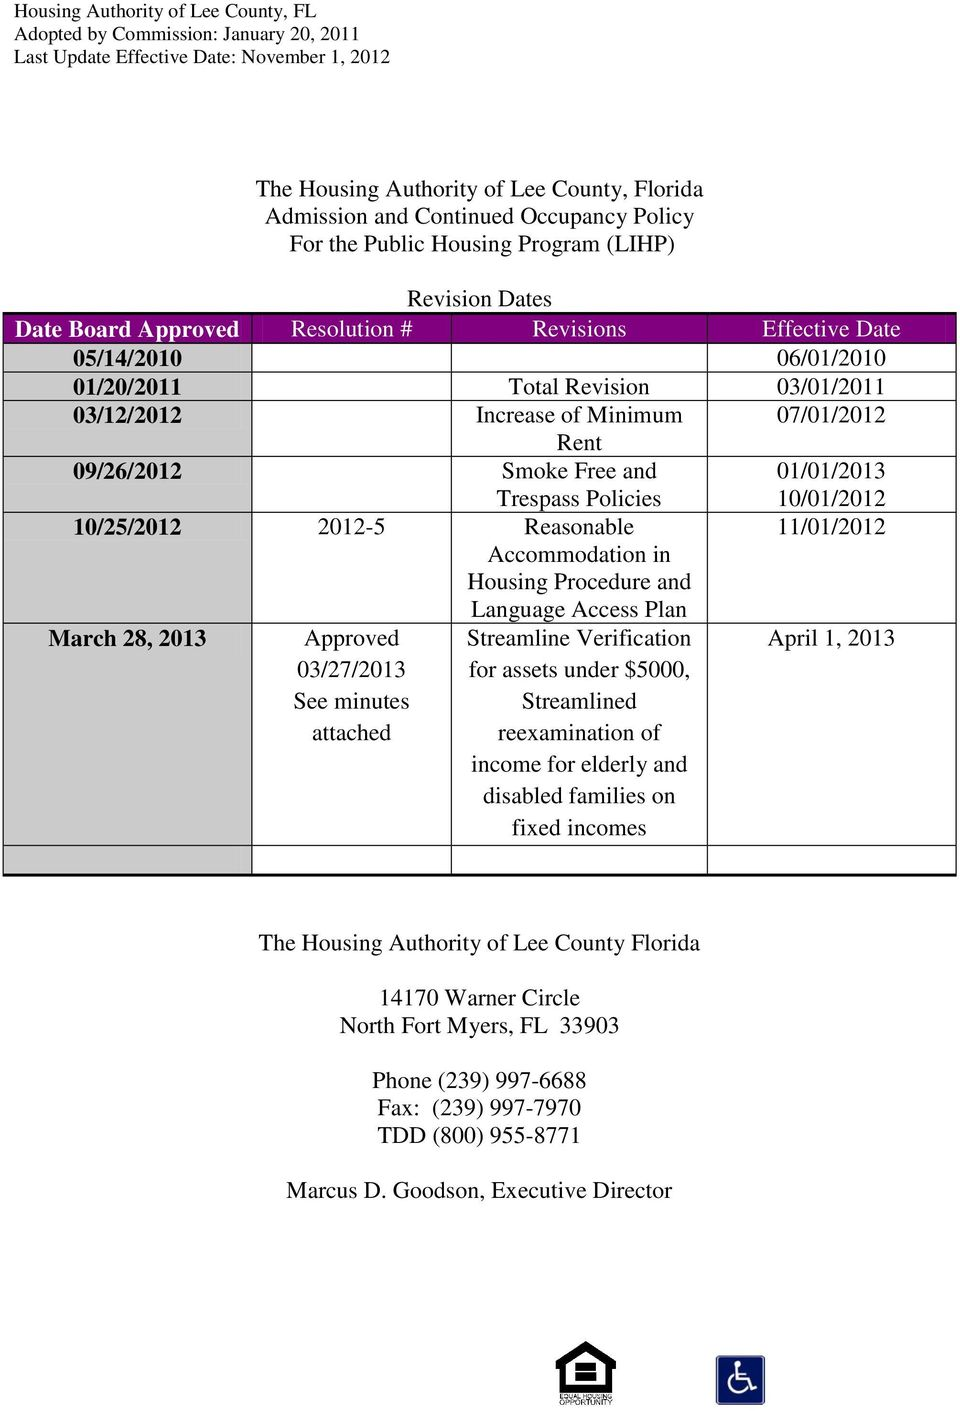 Accommodation in Housing Procedure and Language Access Plan March 28, 2013 Approved 03/27/2013 See minutes attached Streamline Verification for assets under $5000, Streamlined reexamination of income